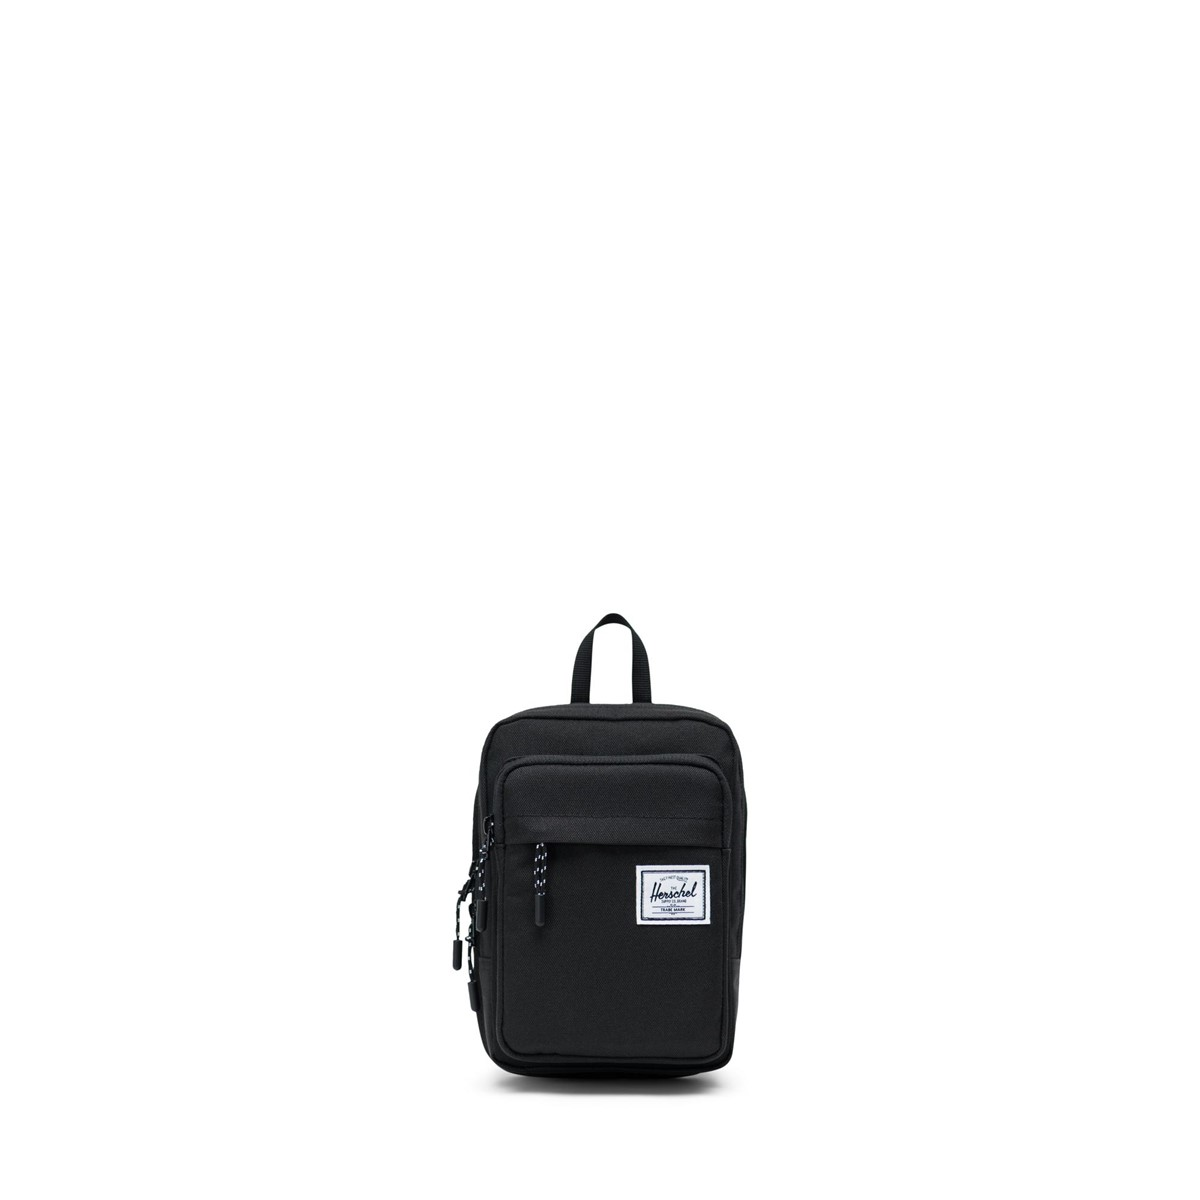 Form Crossbody Bag in Black